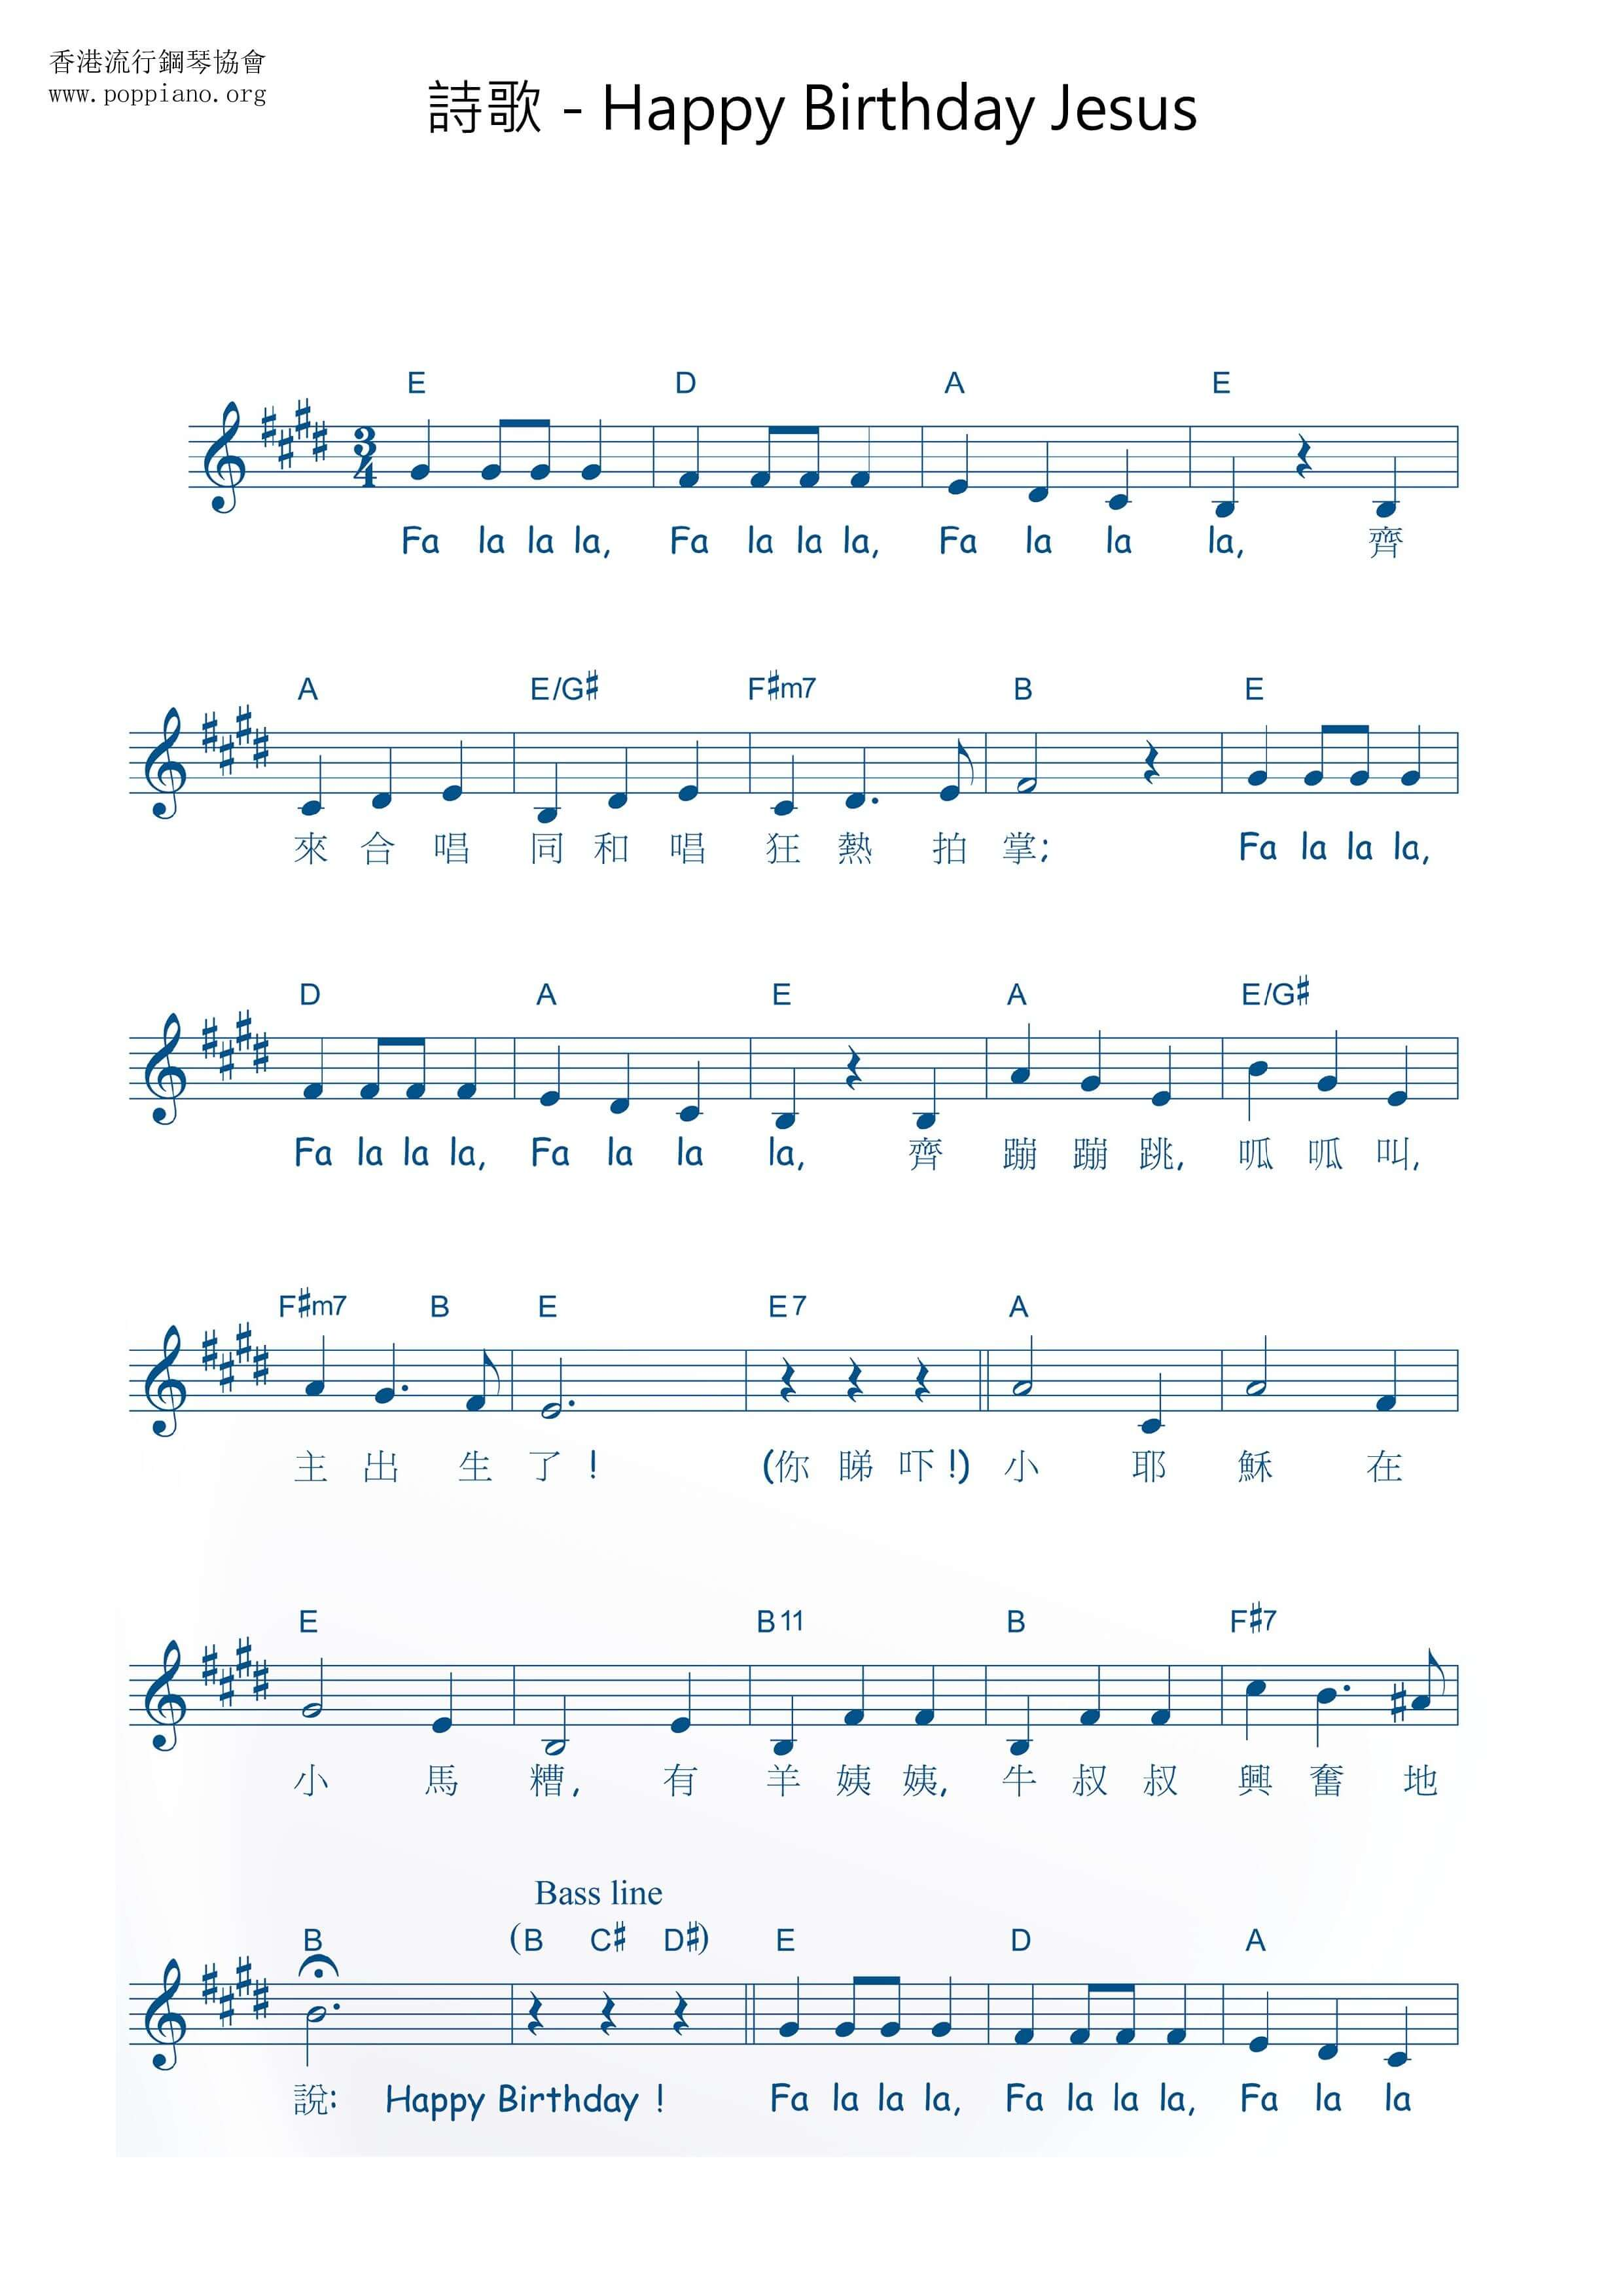 Hymn Happy Birthday Jesus Sheet Music Pdf Free Score Download